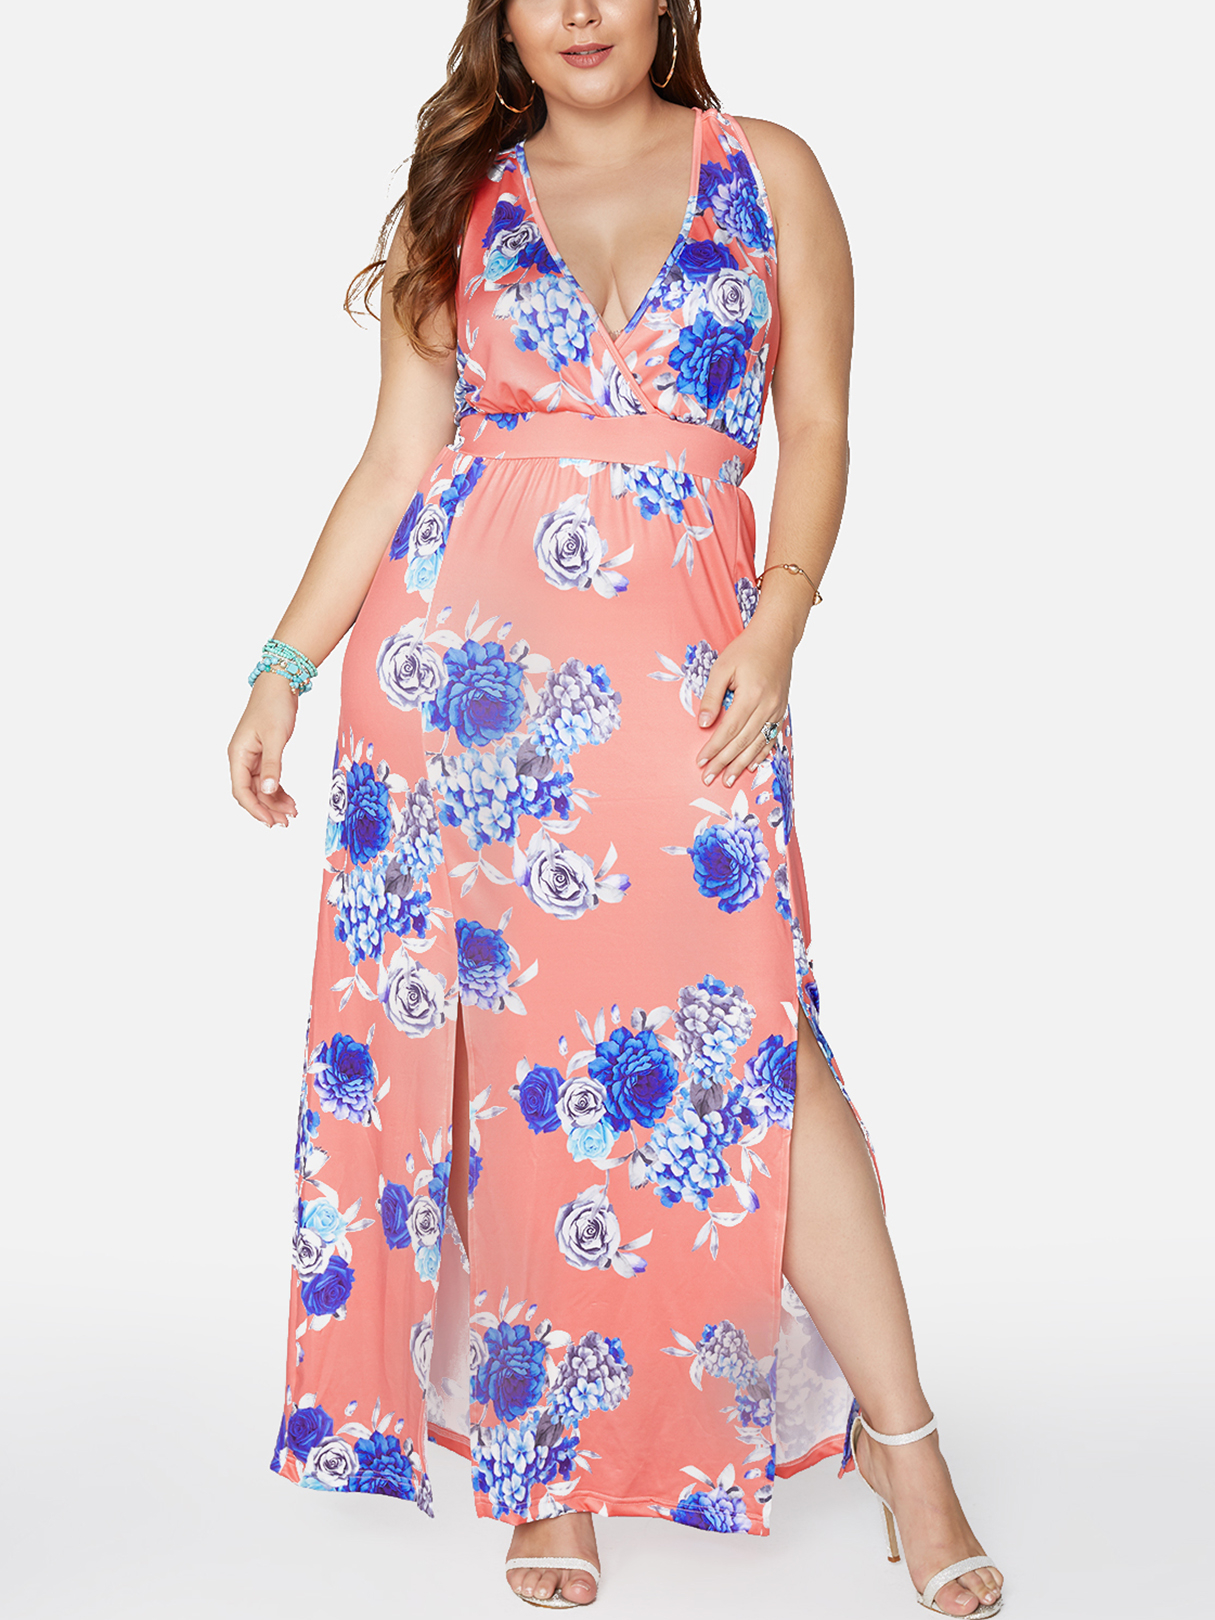 Random Floral Print Backless Deep V-neck Slit Hem Dress